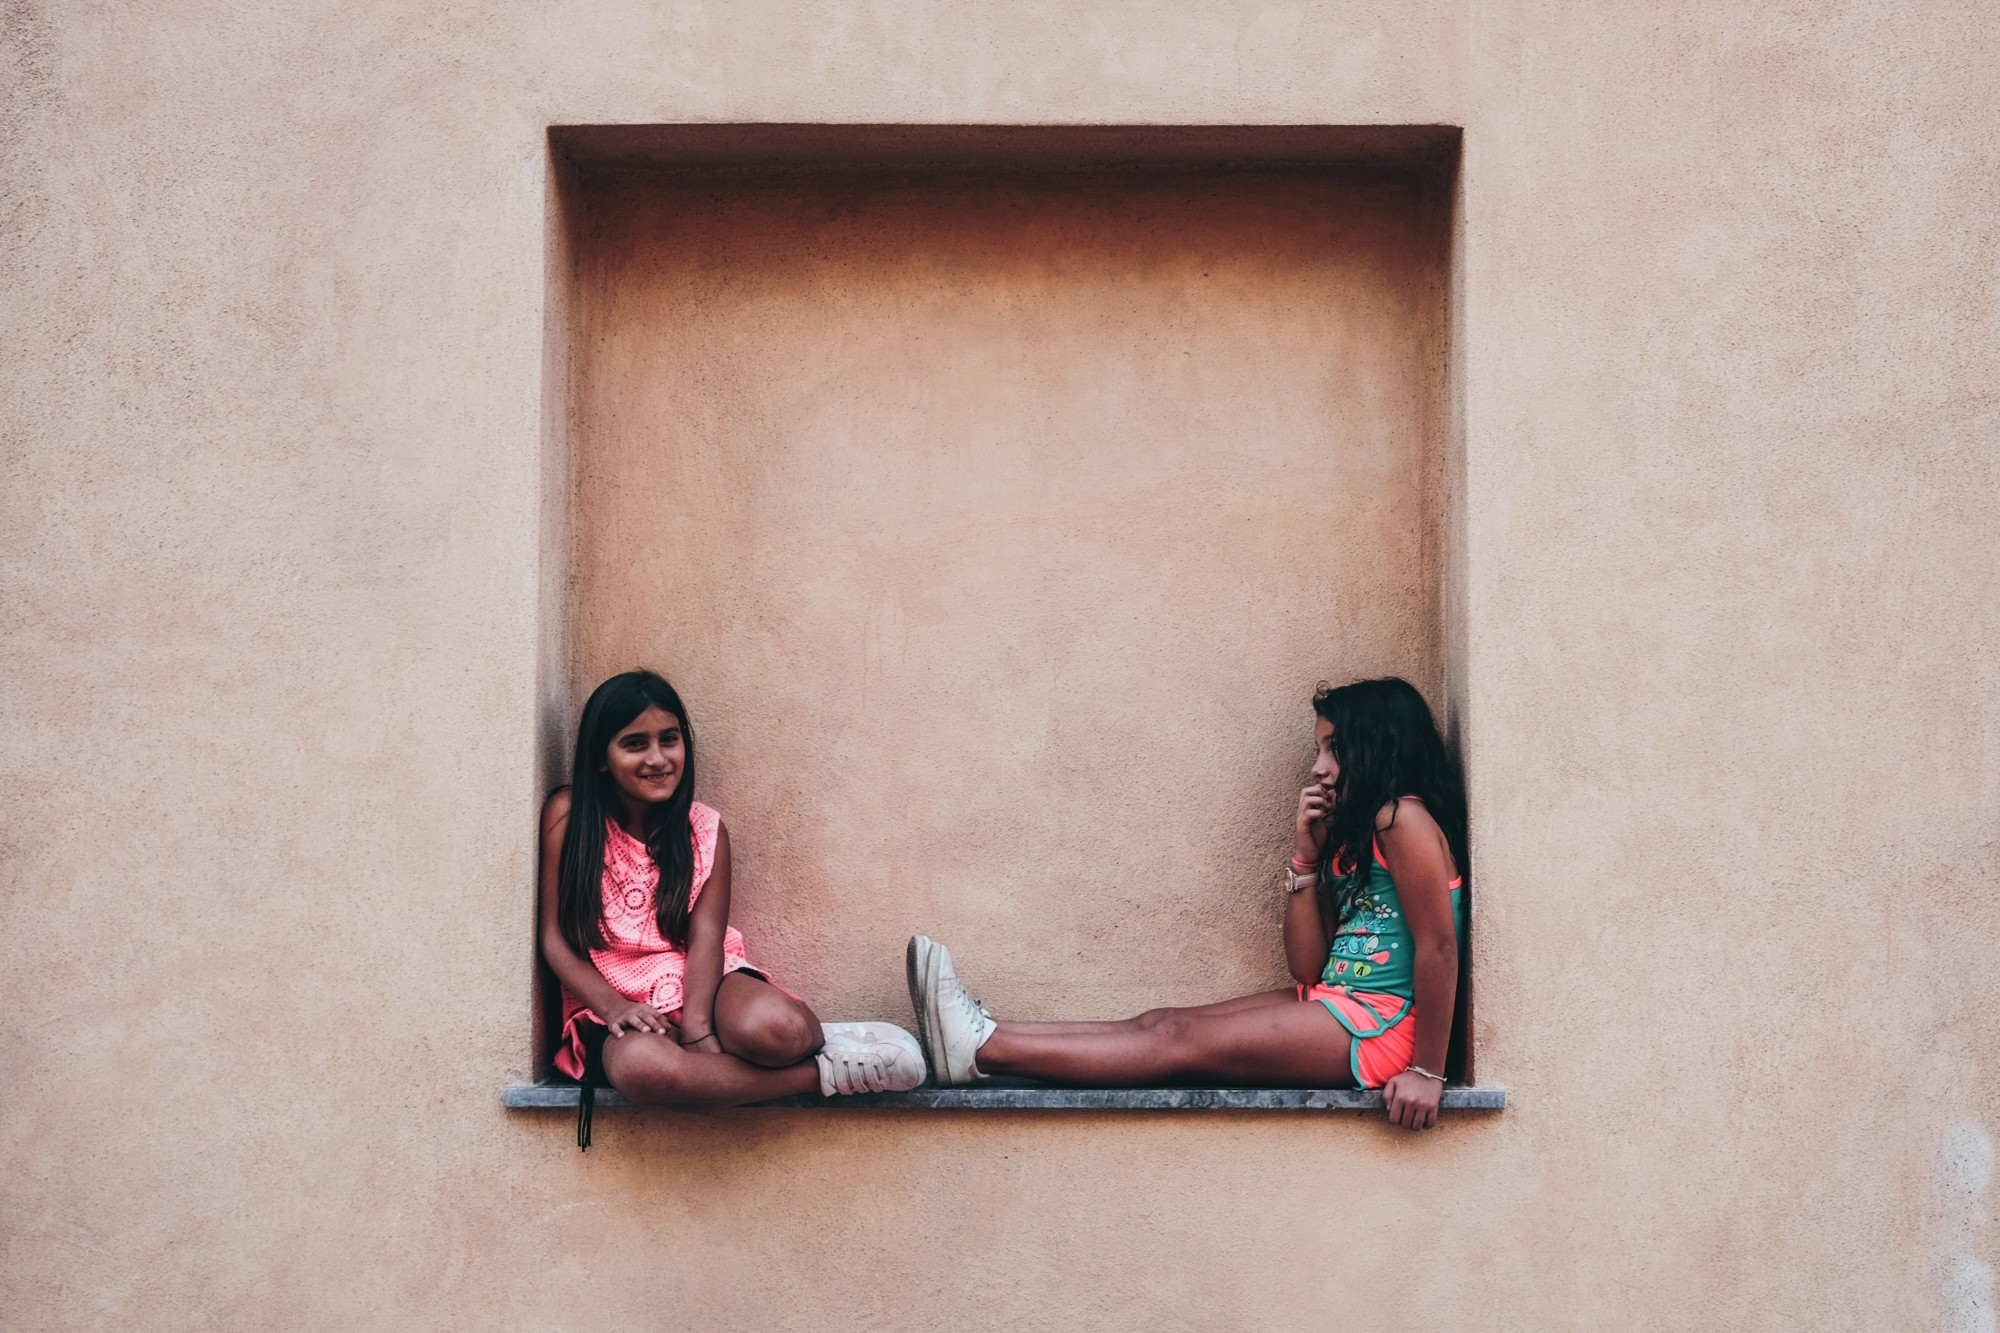 Two girls sitting in an alcove in a wall